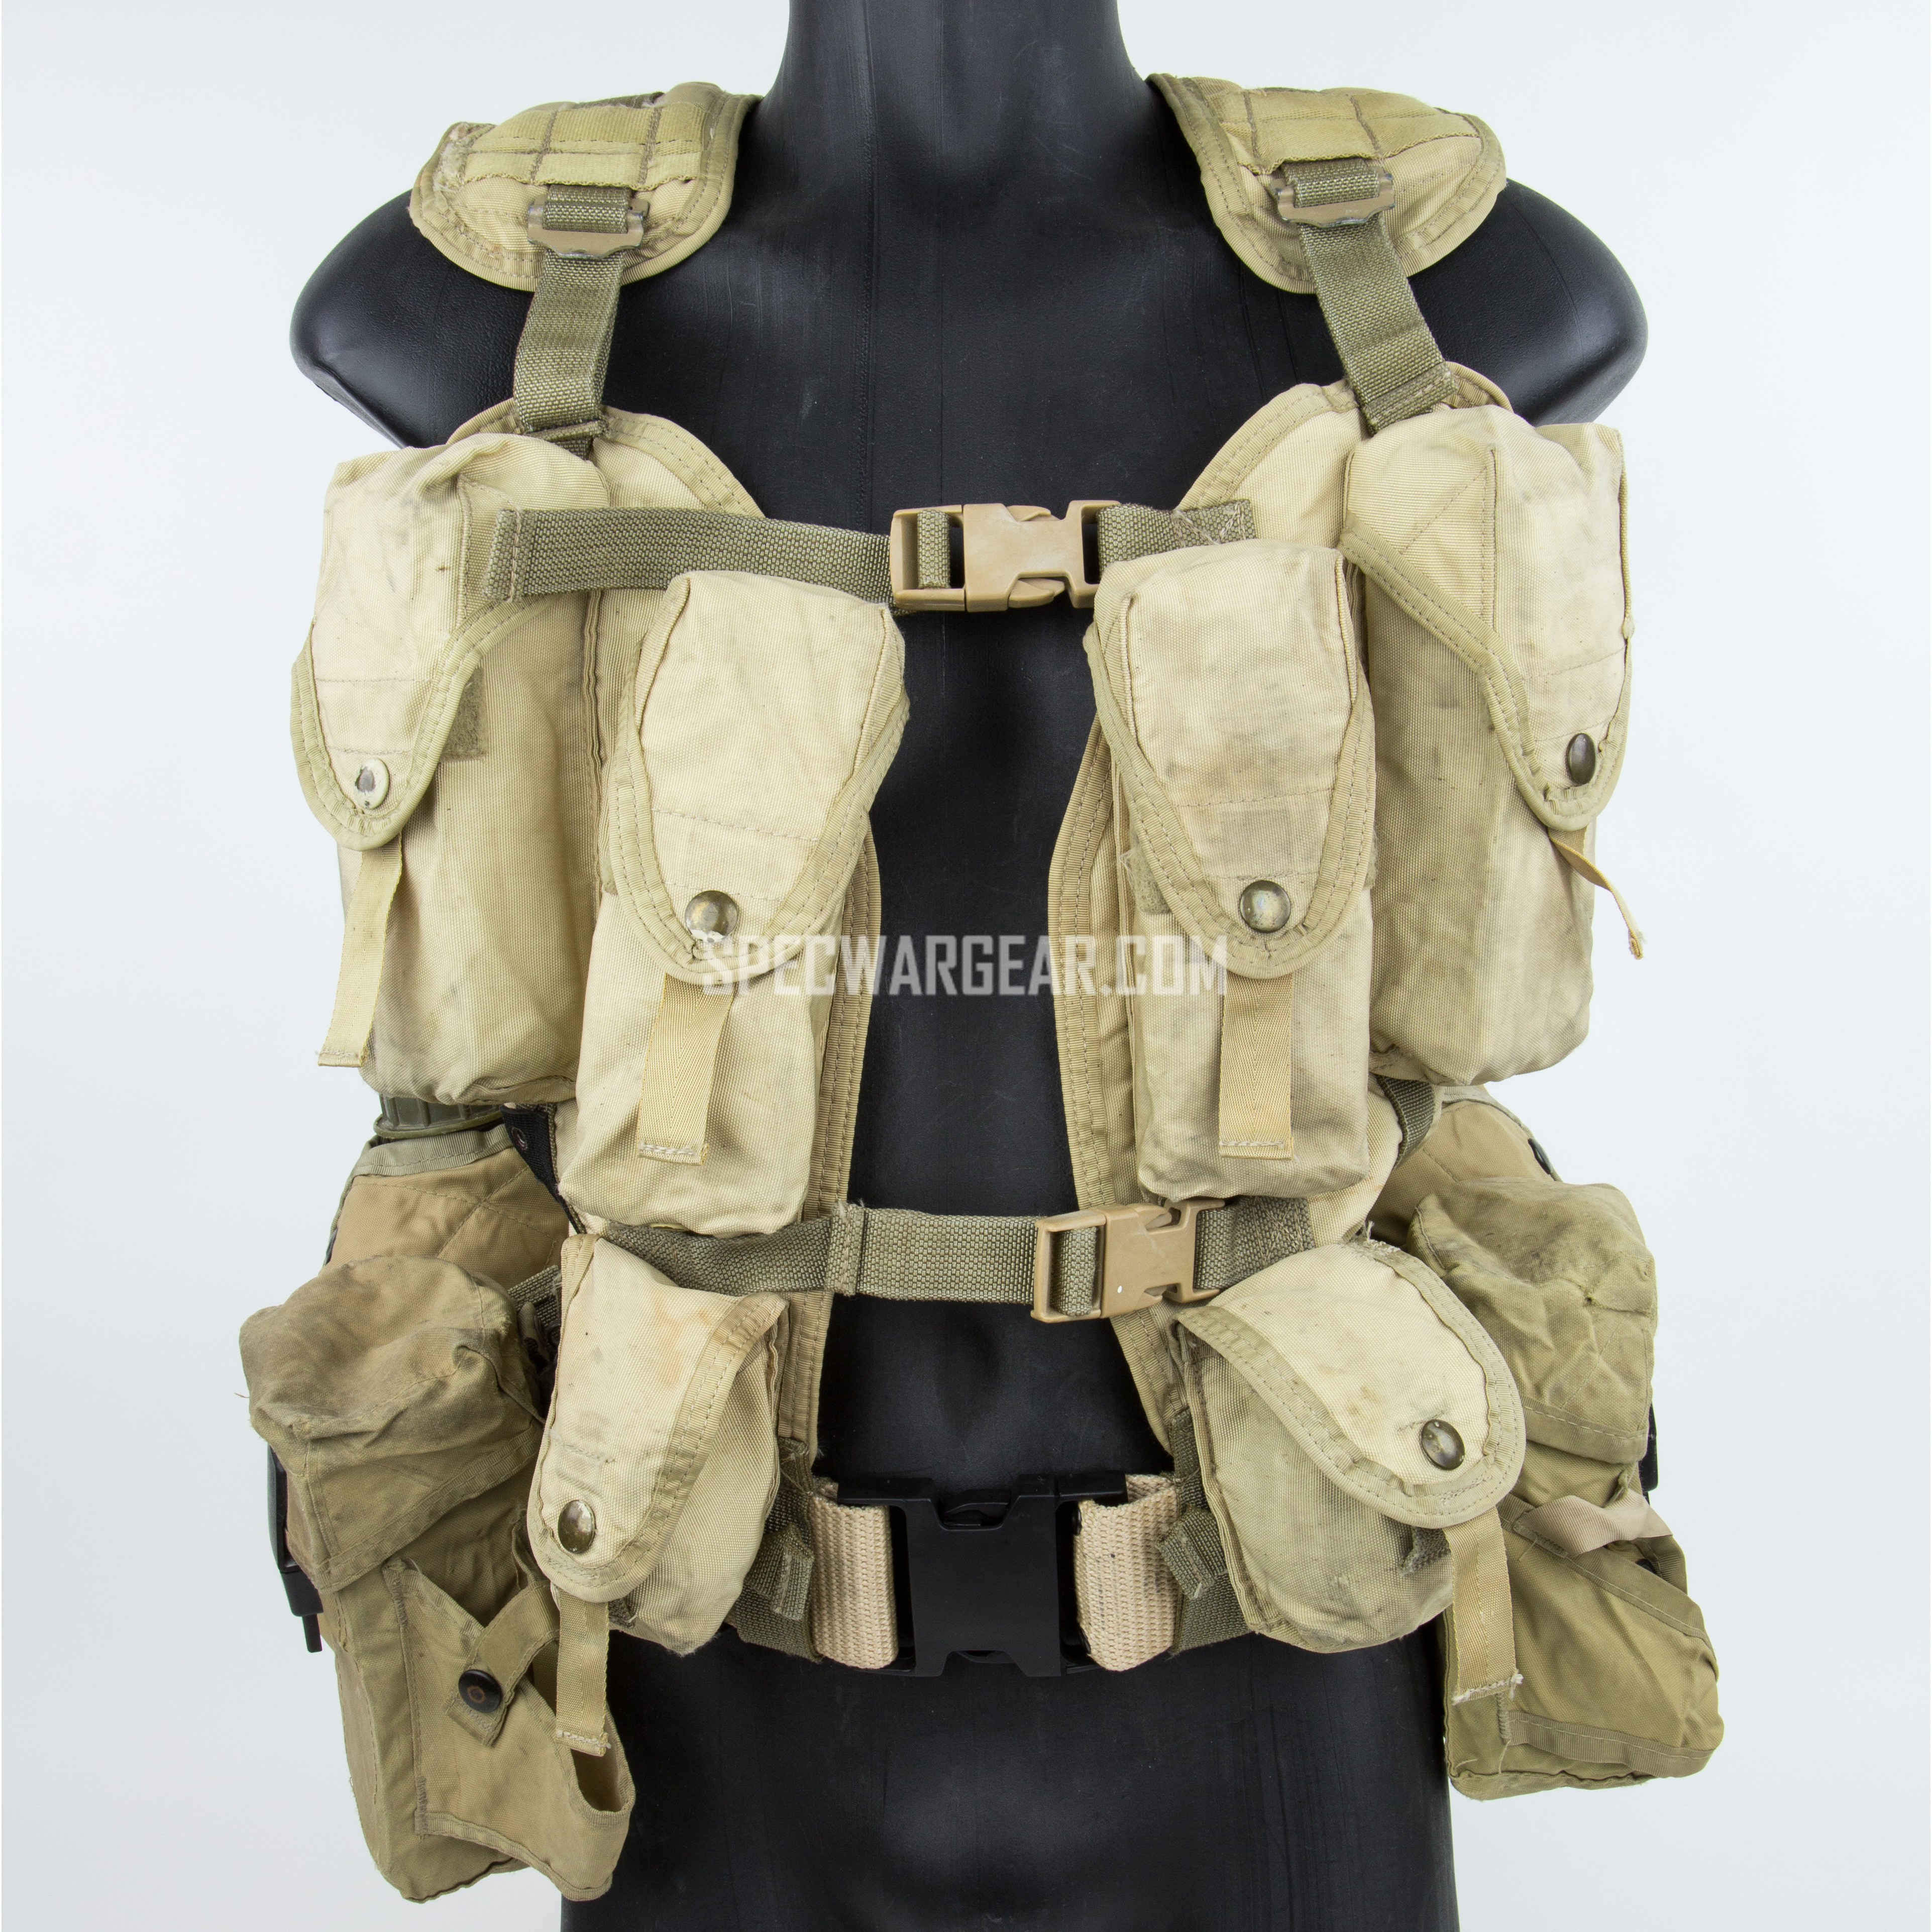 American Body Armor Tactical Load Bearing Vest